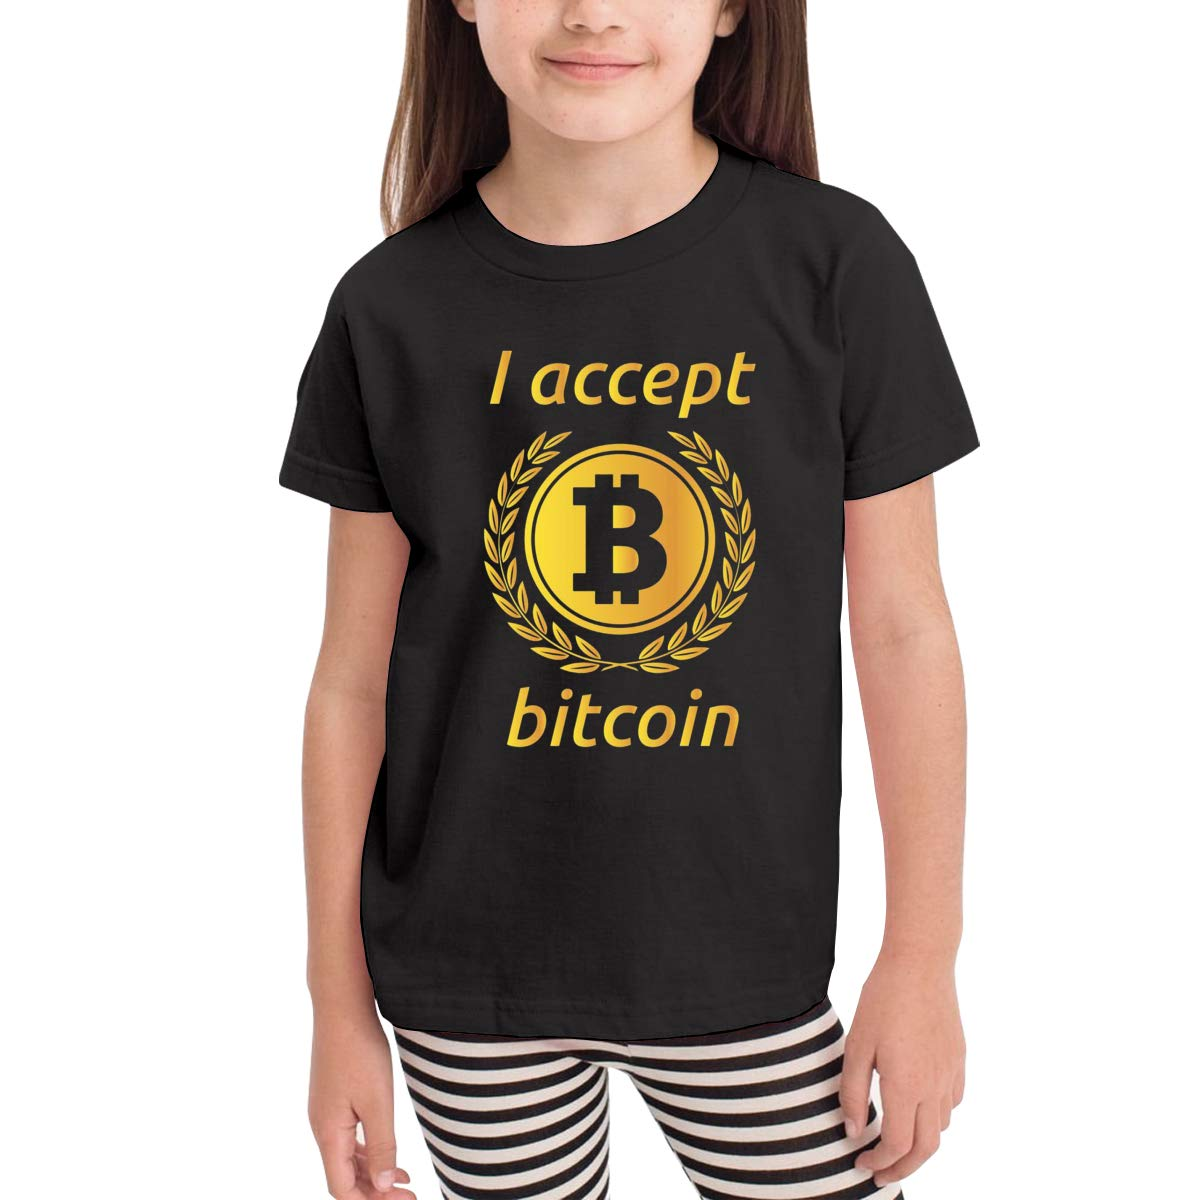 Onlybabycare I Accept Bitcoin1 100/% Cotton Toddler Baby Boys Girls Kids Short Sleeve T Shirt Top Tee Clothes 2-6 T